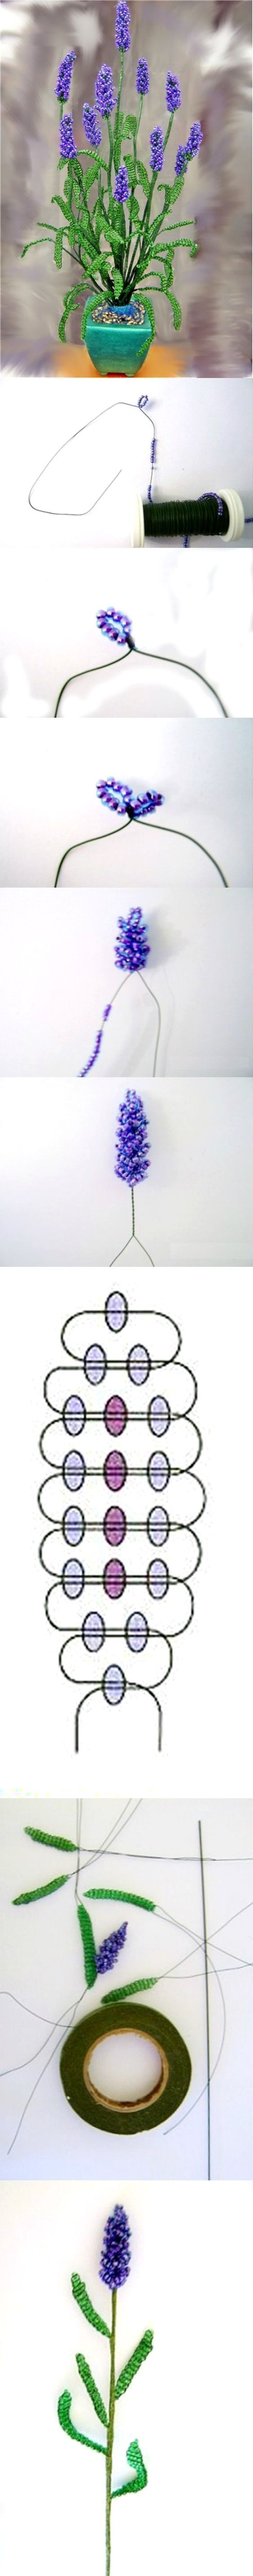 bead lavender tutorial: